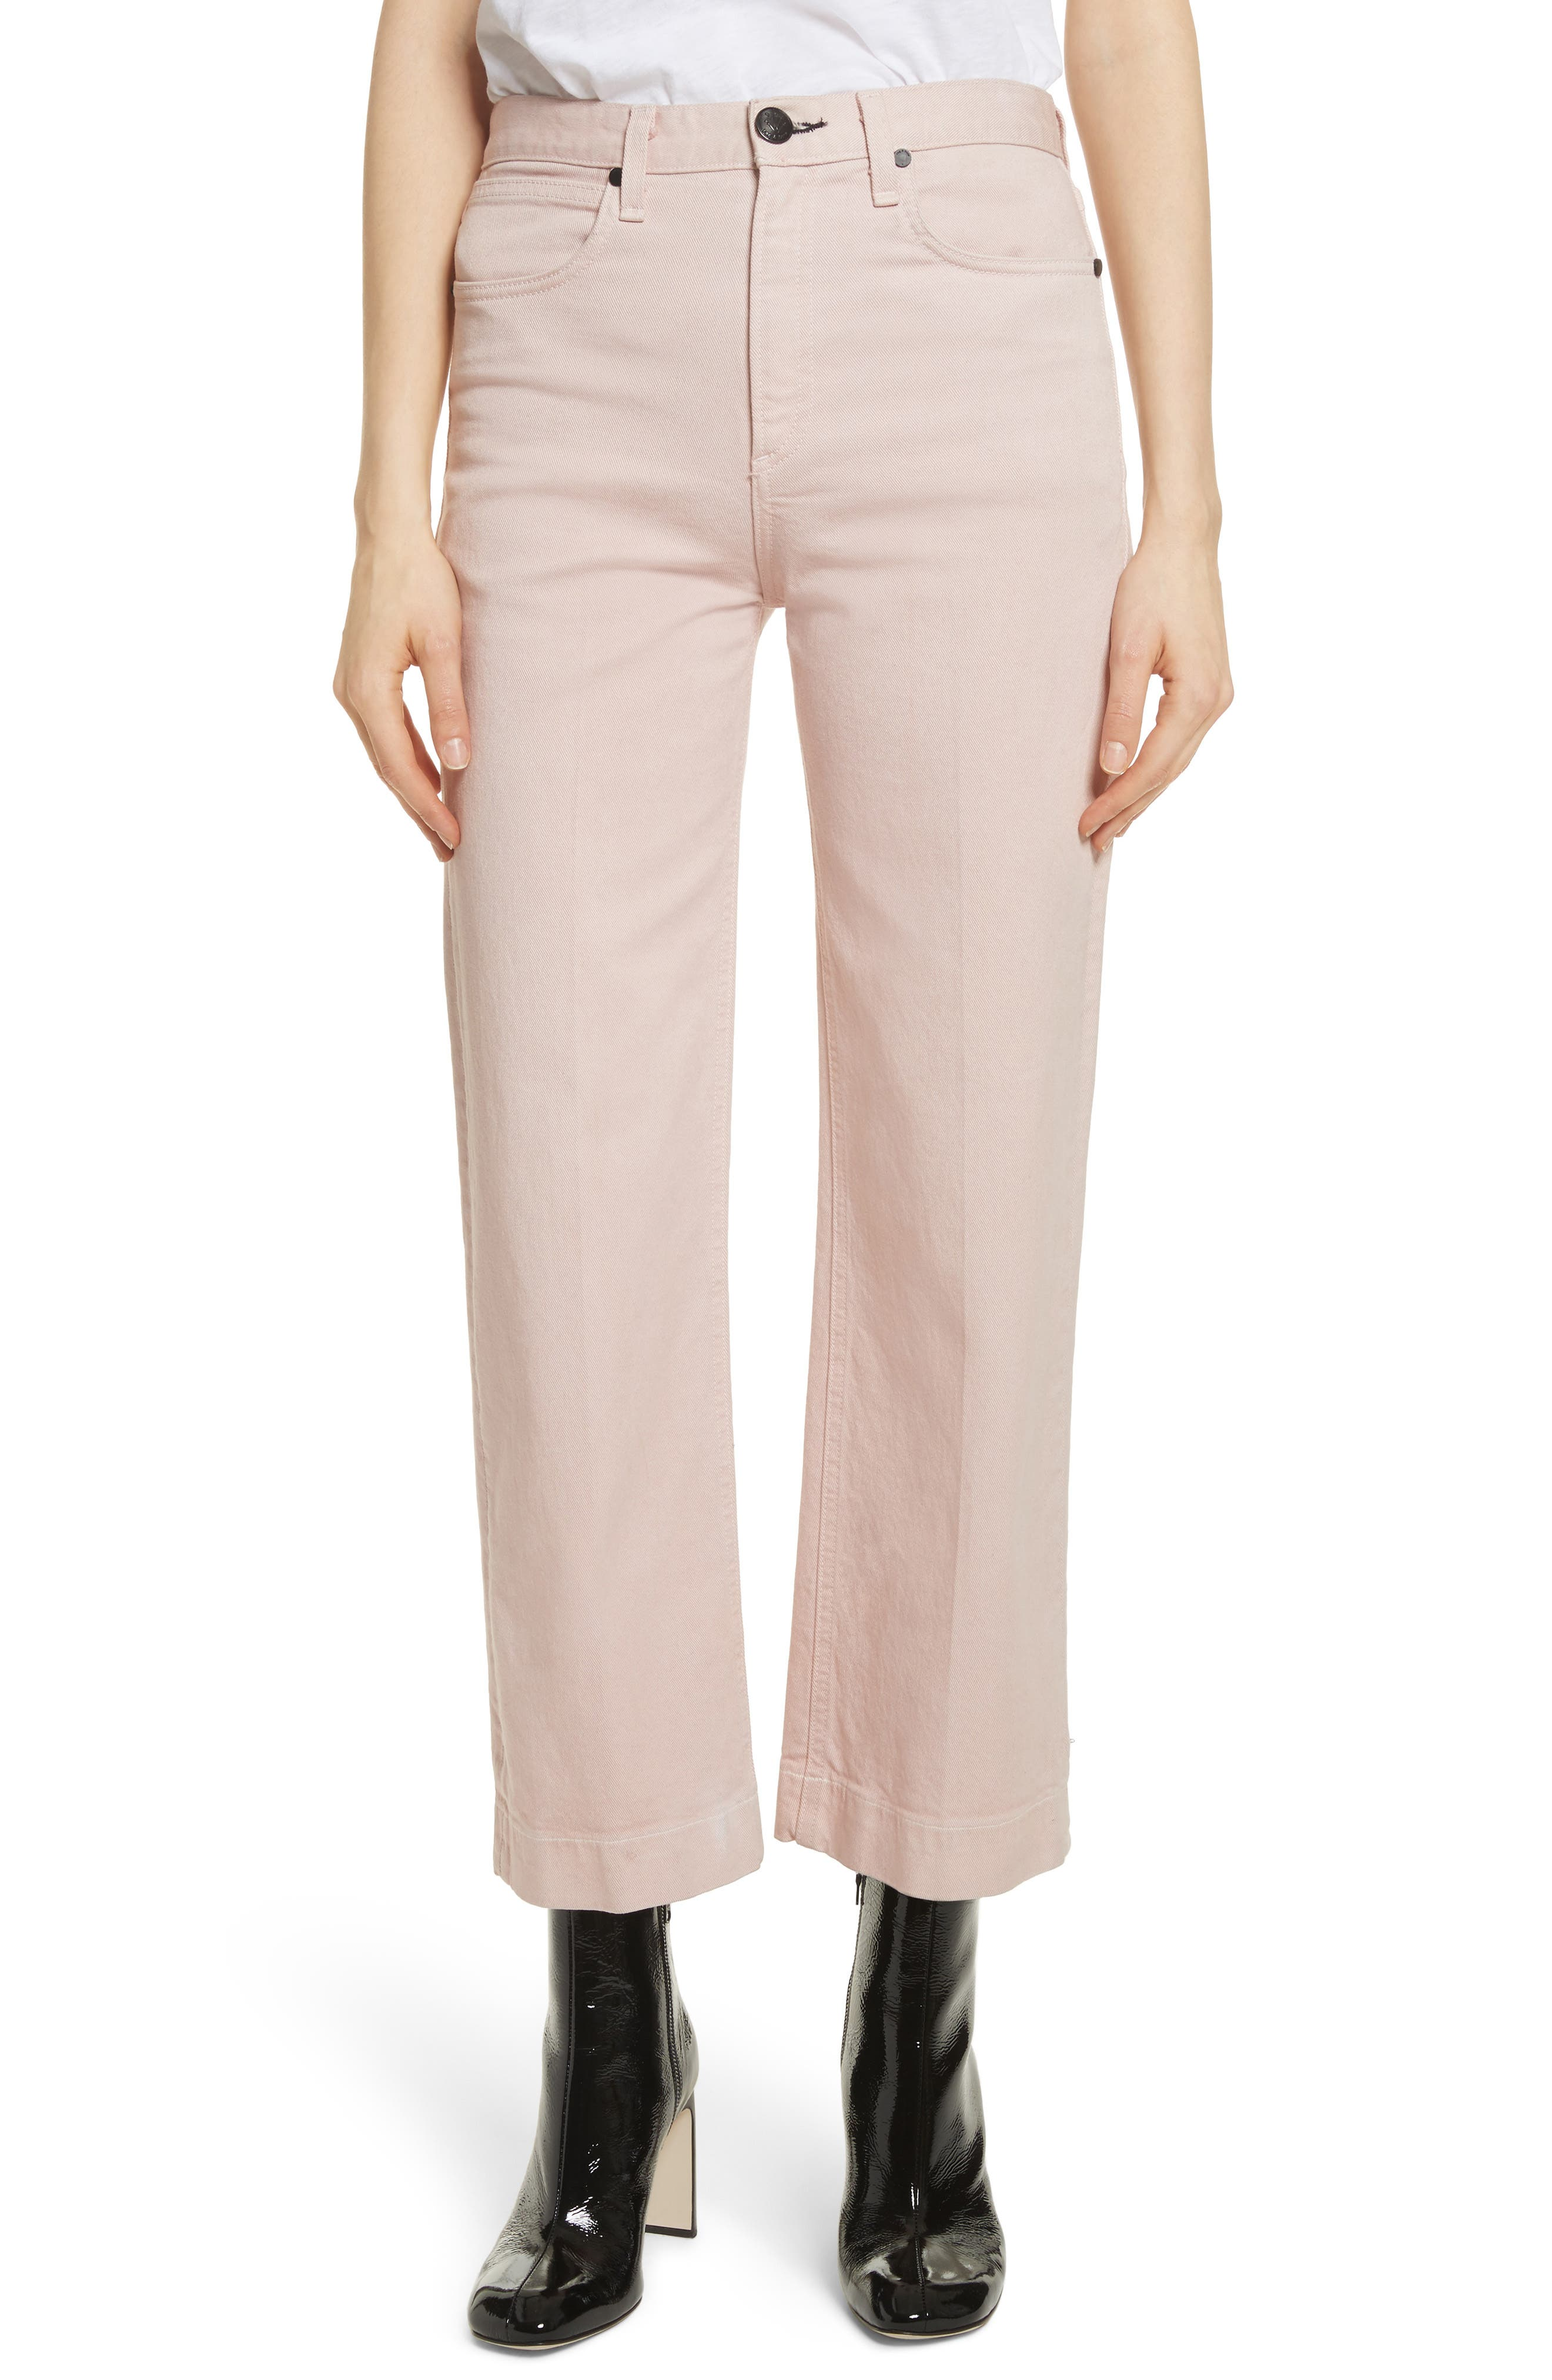 Justine High Waist Trouser Jeans,                             Main thumbnail 1, color,                             Blush Twill